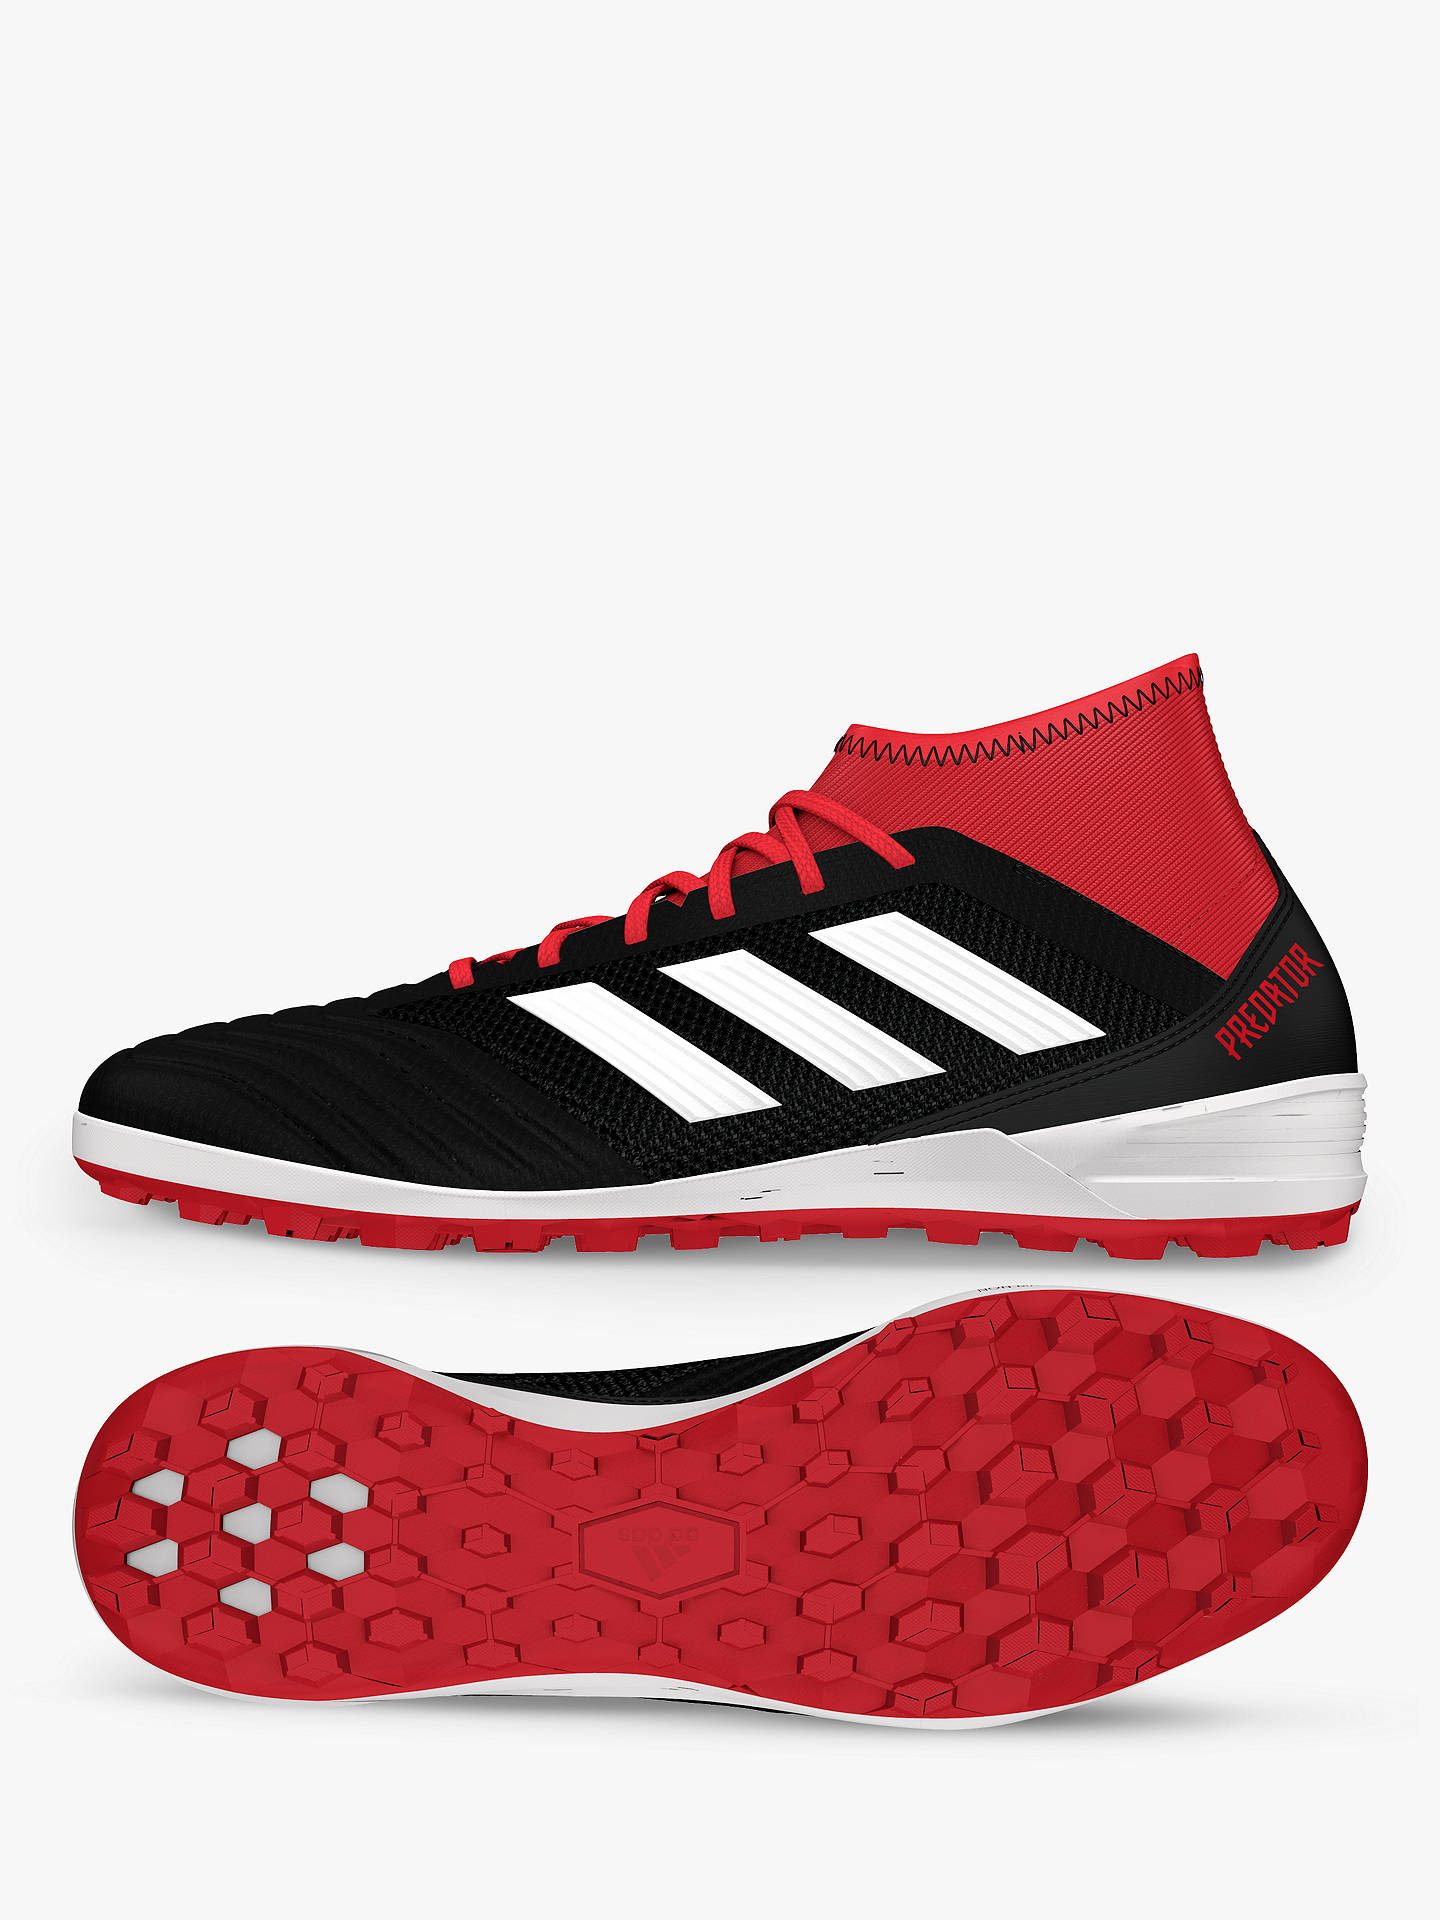 f1675ccc776f ... Buy adidas Predator 18.3 Men s Artificial Turf Football Boots